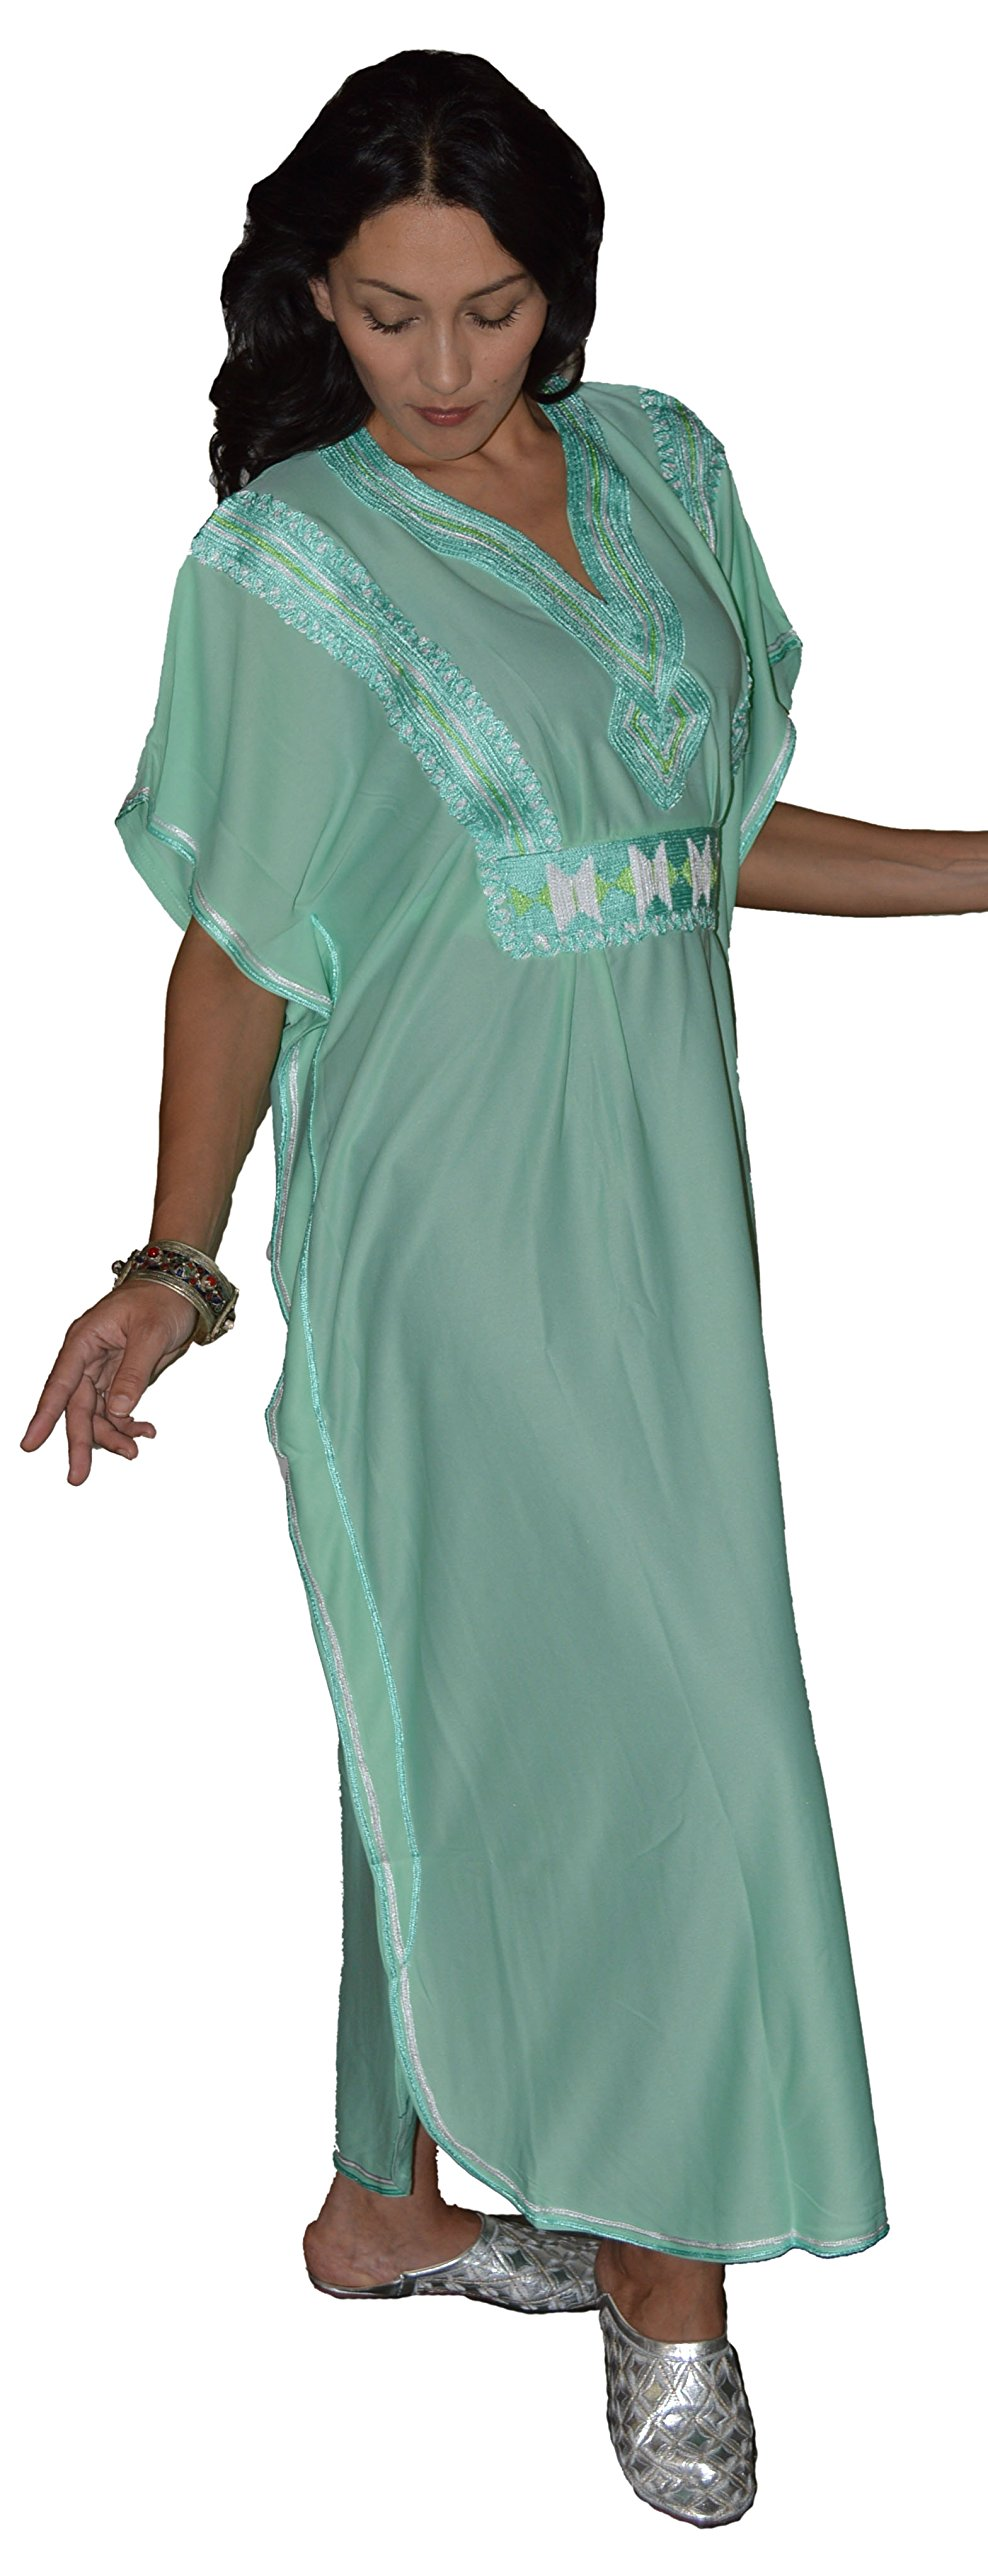 Moroccan Caftans Women Breathable Handmade Butterfly Style Embroidery Ethnic Design Mint